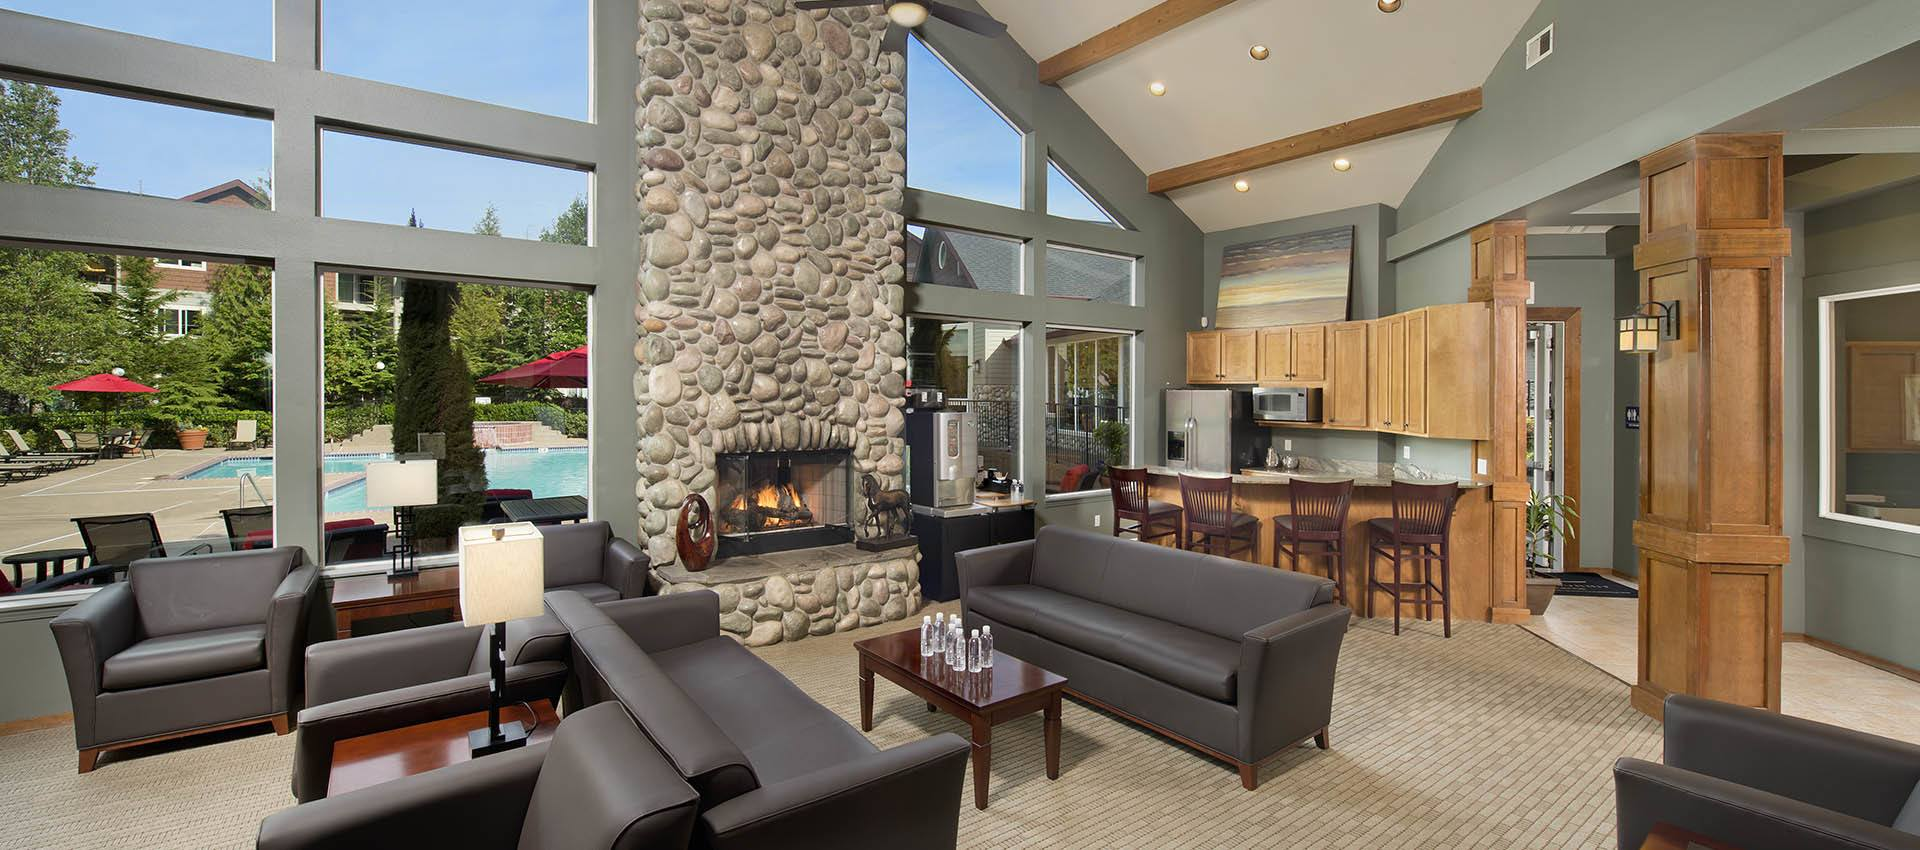 Resident's Clubhouse With Kitchen at Altamont Summit in OR